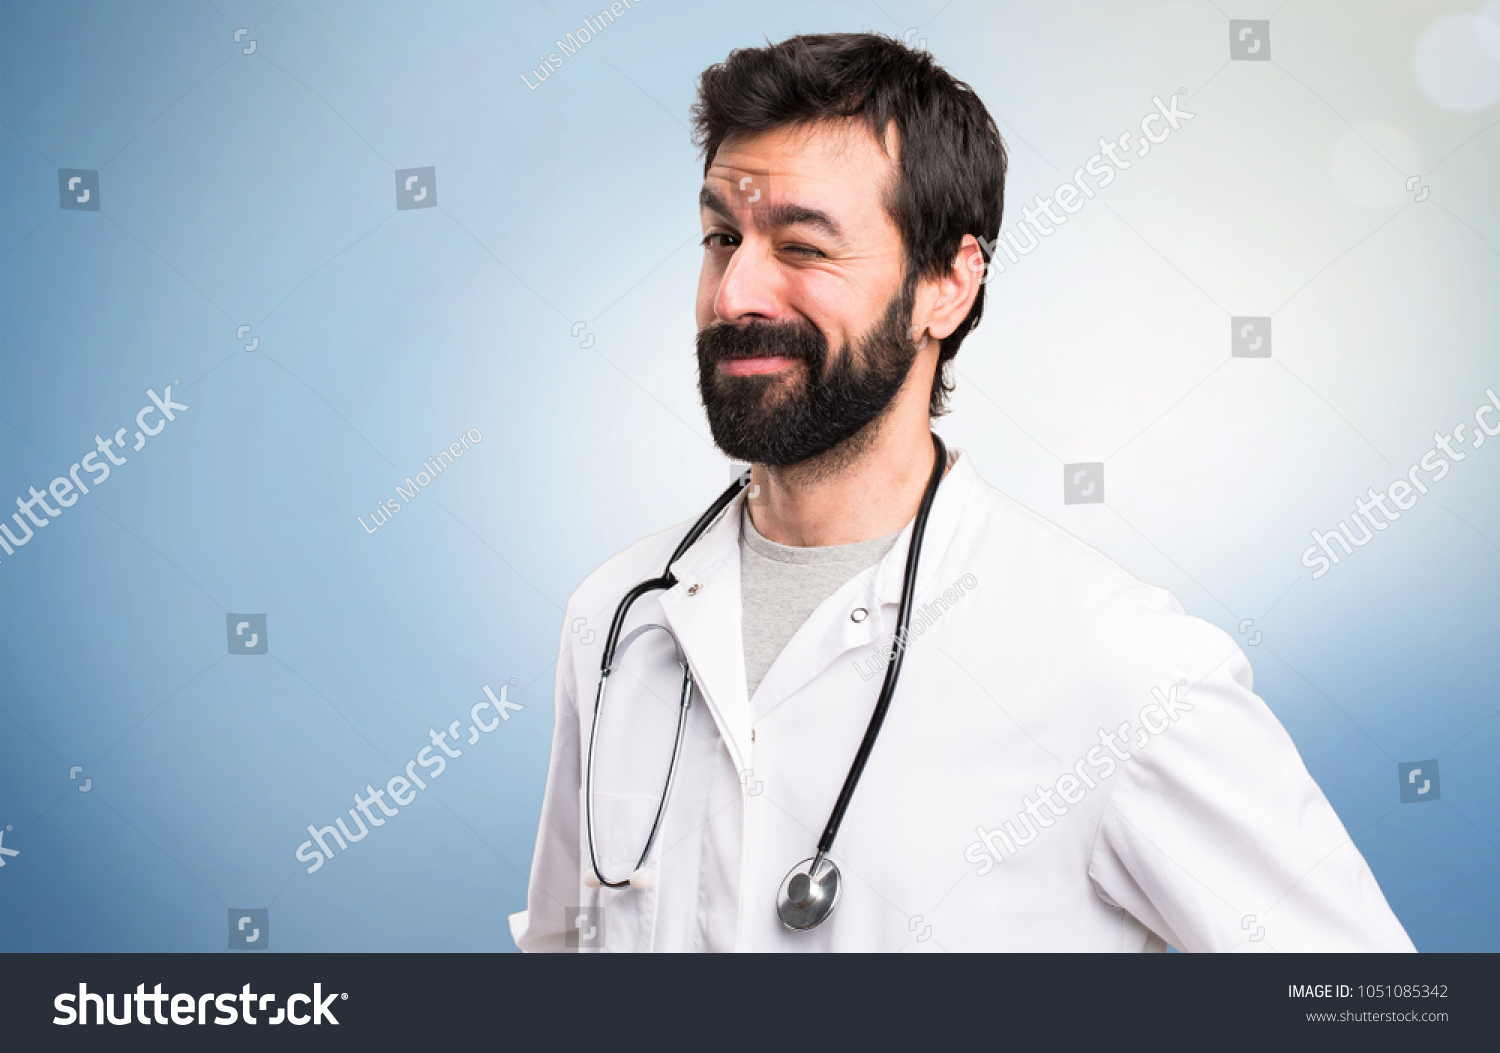 stock-photo-young-doctor-winking-on-blue